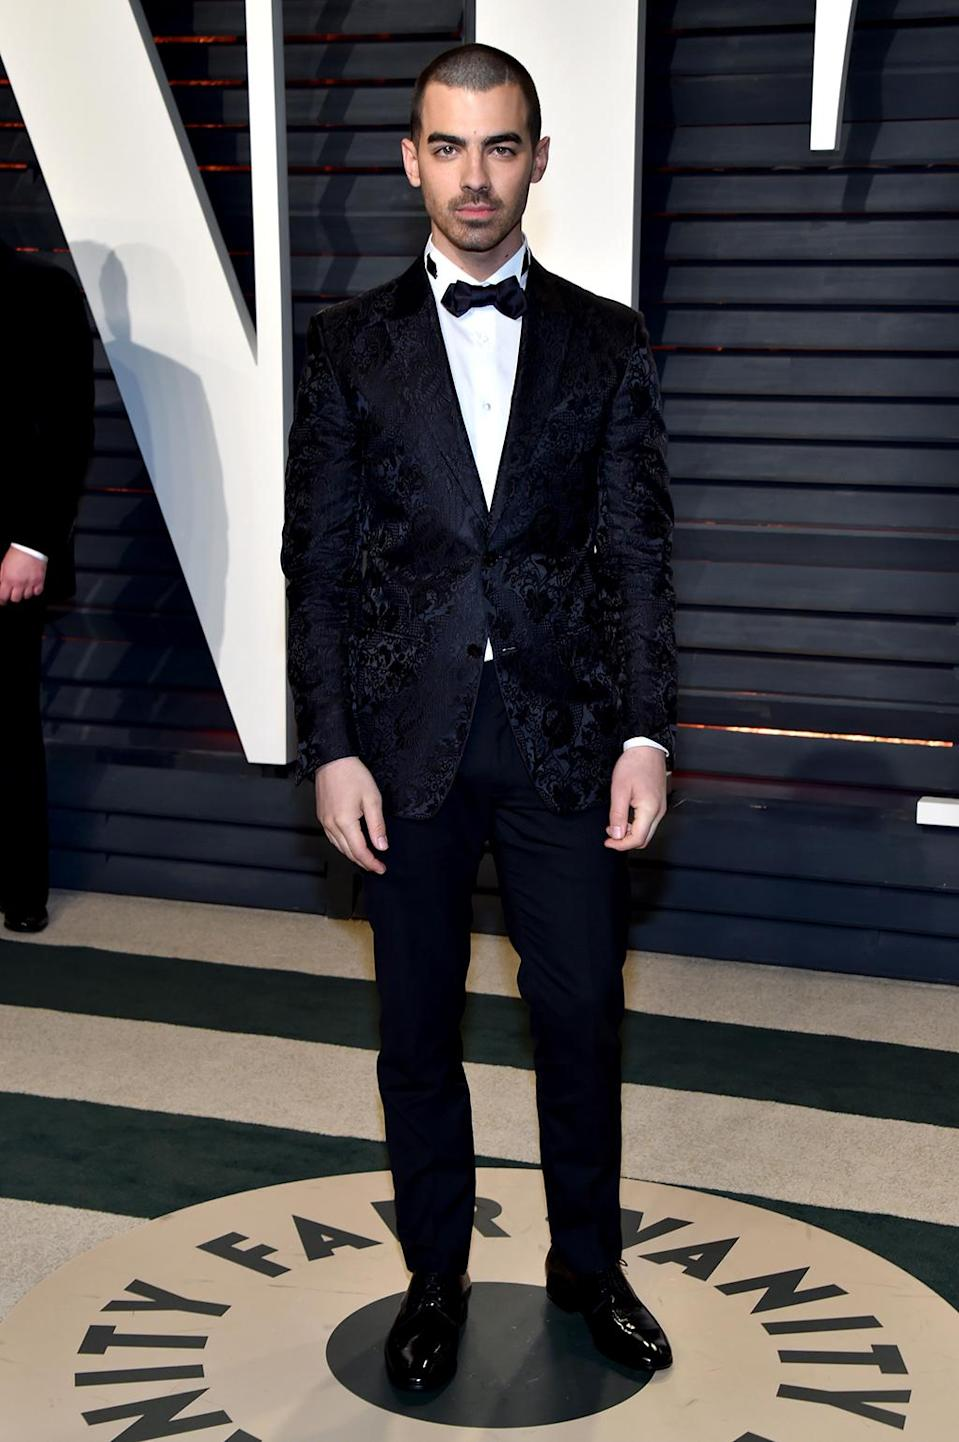 <p>Joe Jonas attends the 2017 Vanity Fair Oscar Party hosted by Graydon Carter at Wallis Annenberg Center for the Performing Arts on February 26, 2017 in Beverly Hills, California. (Photo by Pascal Le Segretain/Getty Images) </p>